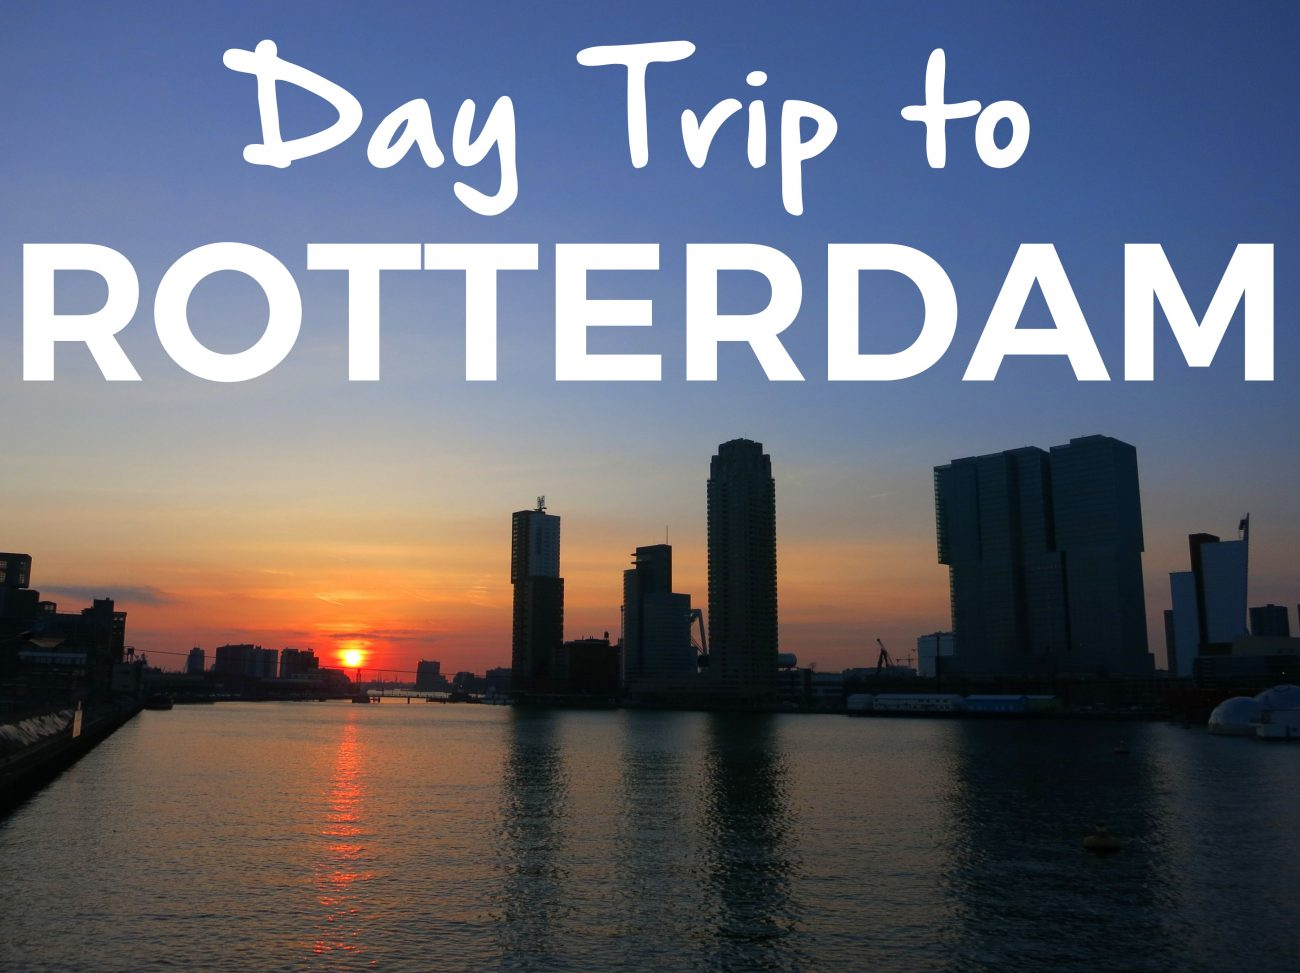 Rotterdam is a large, modern city with lots of interesting sights. Here are a few of our recommendations, some a bit off the beaten track.